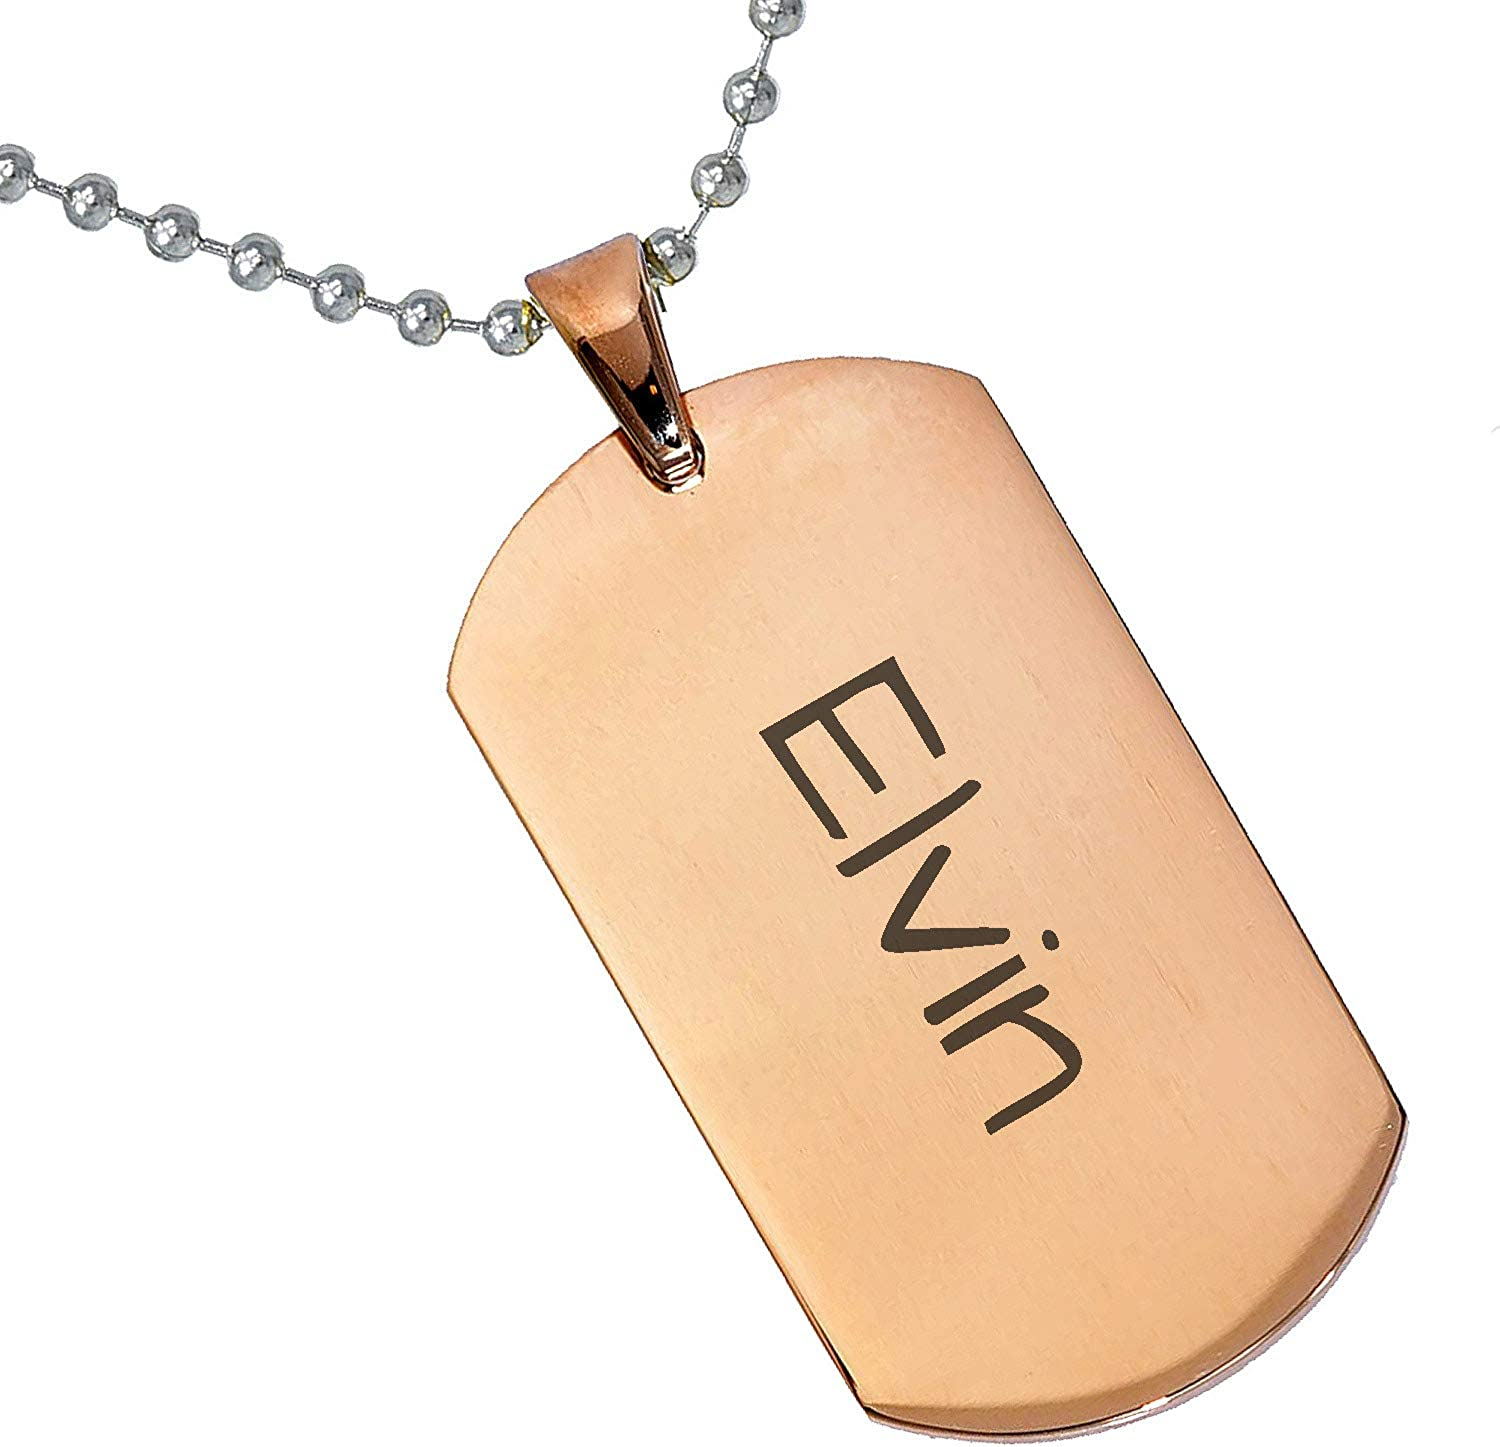 Stainless Steel Silver Gold Black Rose Gold Color Baby Name Elvin Engraved Personalized Gifts For Son Daughter Boyfriend Girlfriend Initial Customizable Pendant Necklace Dog Tags 24 Ball Chain